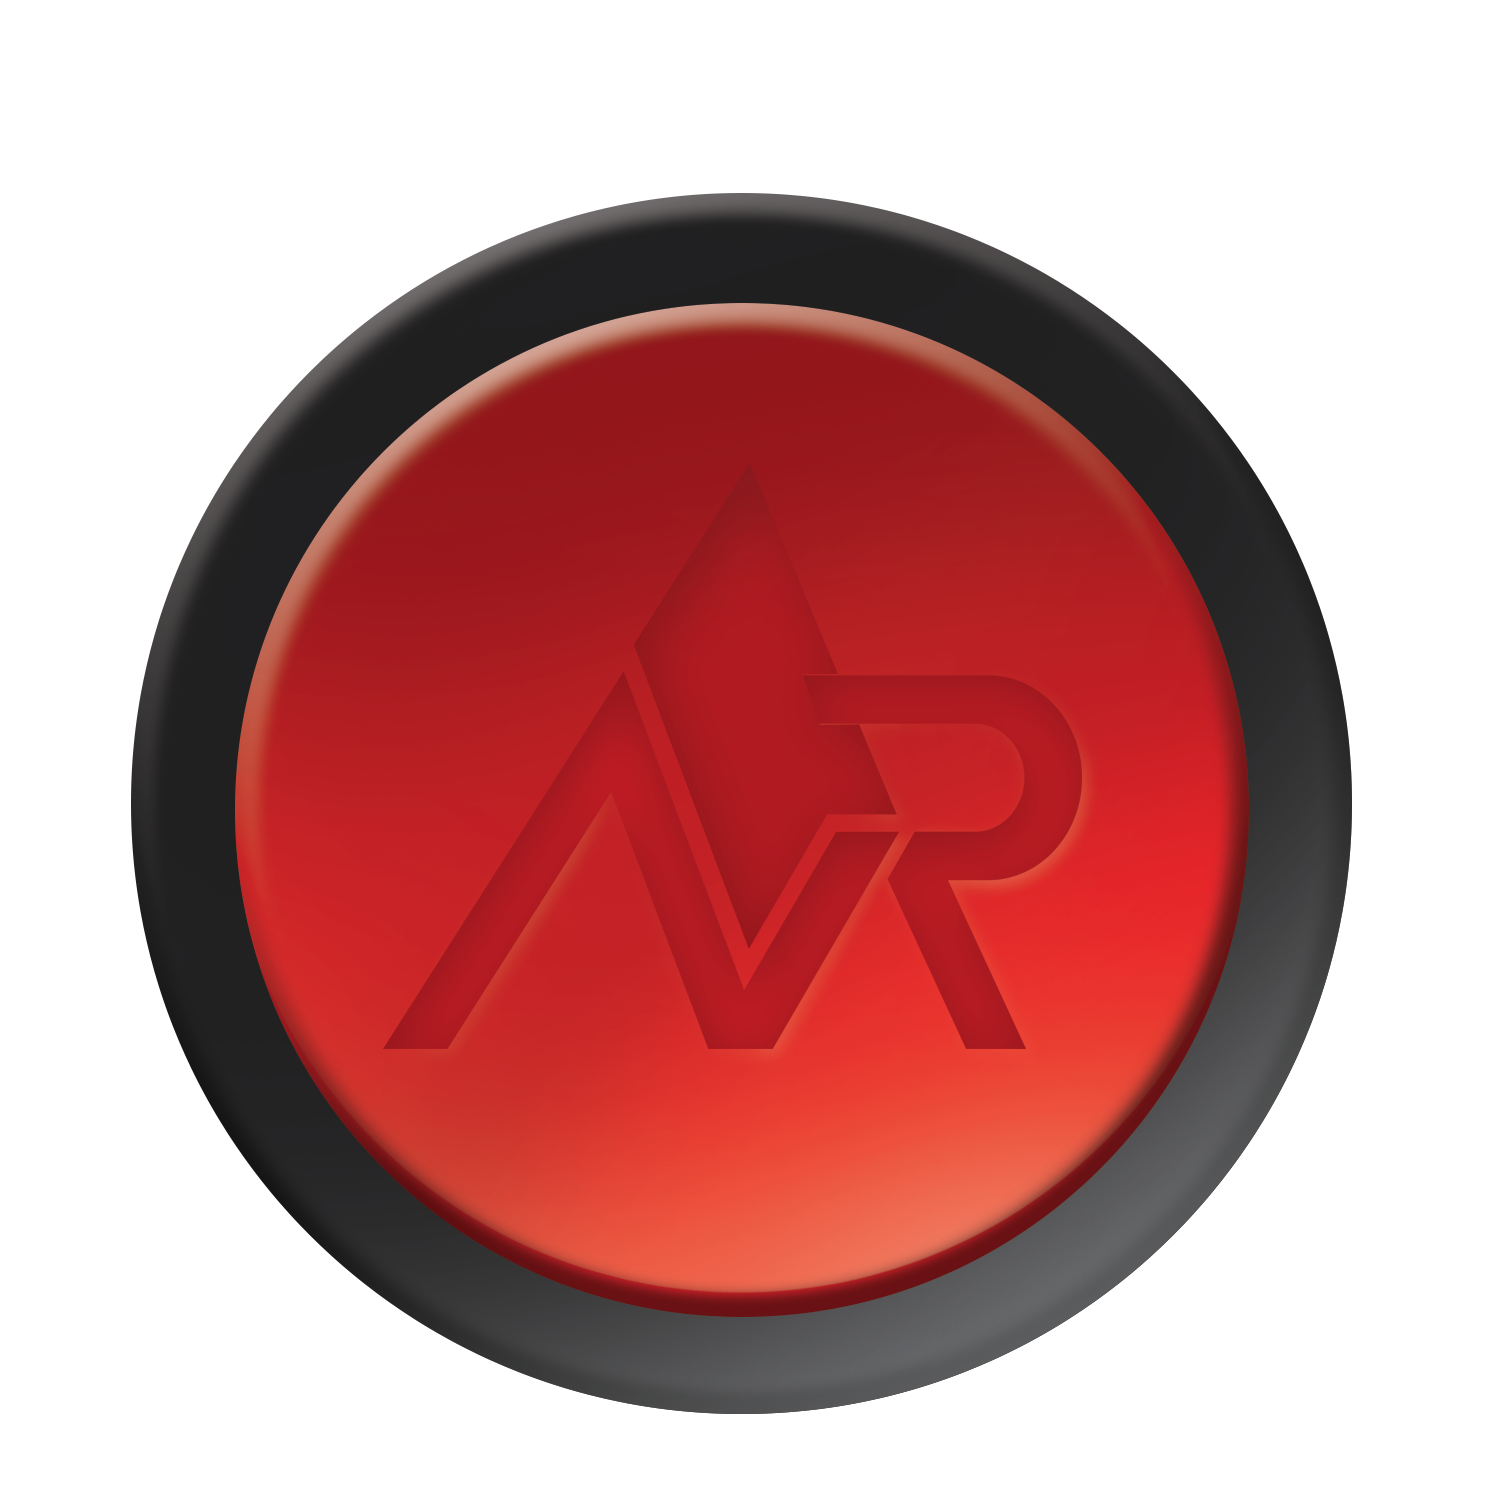 AvR_Button.png